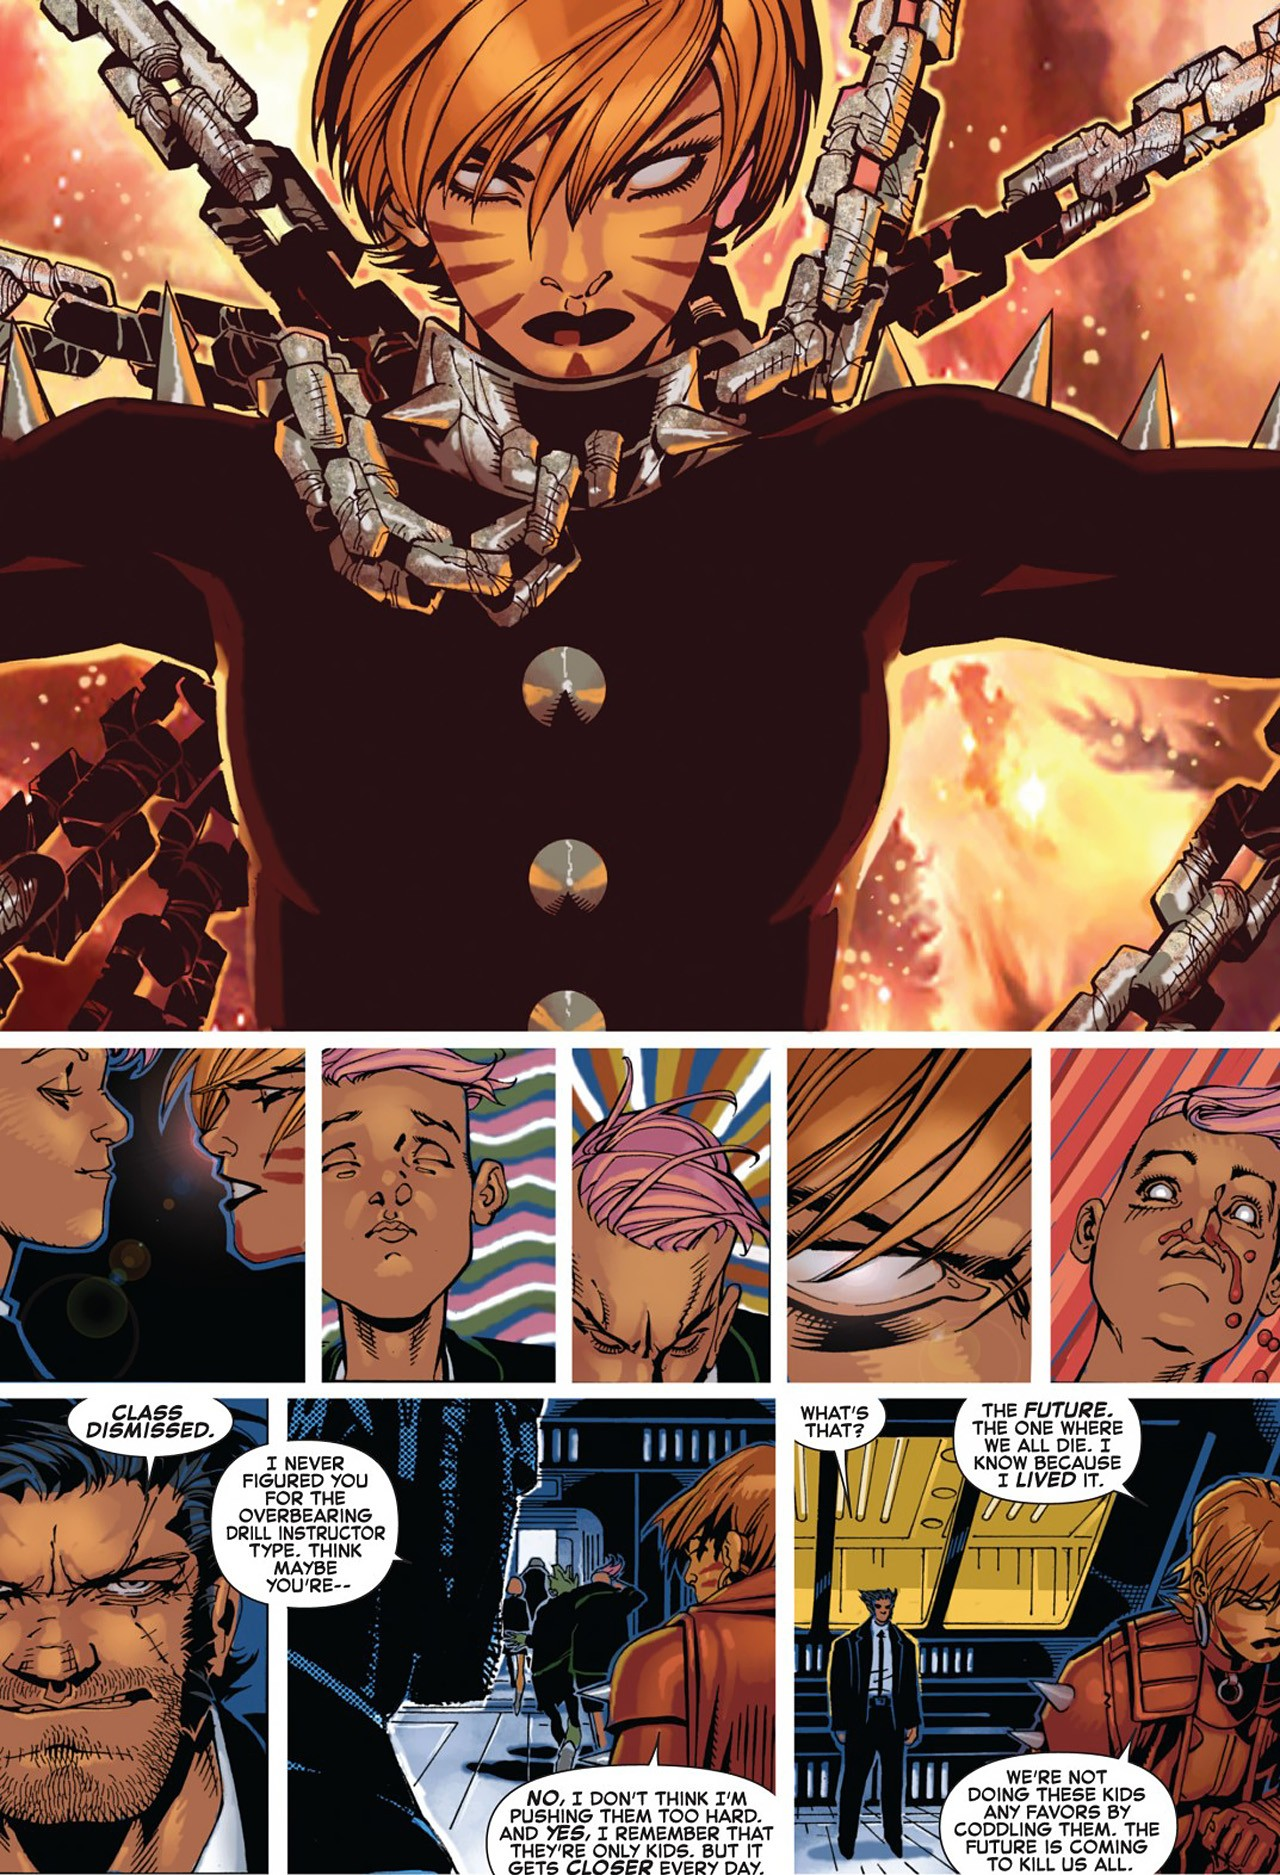 Able to oneshot Omega Level Mutant Telepath Quentin Quire, for trying to penetrate her defenses.